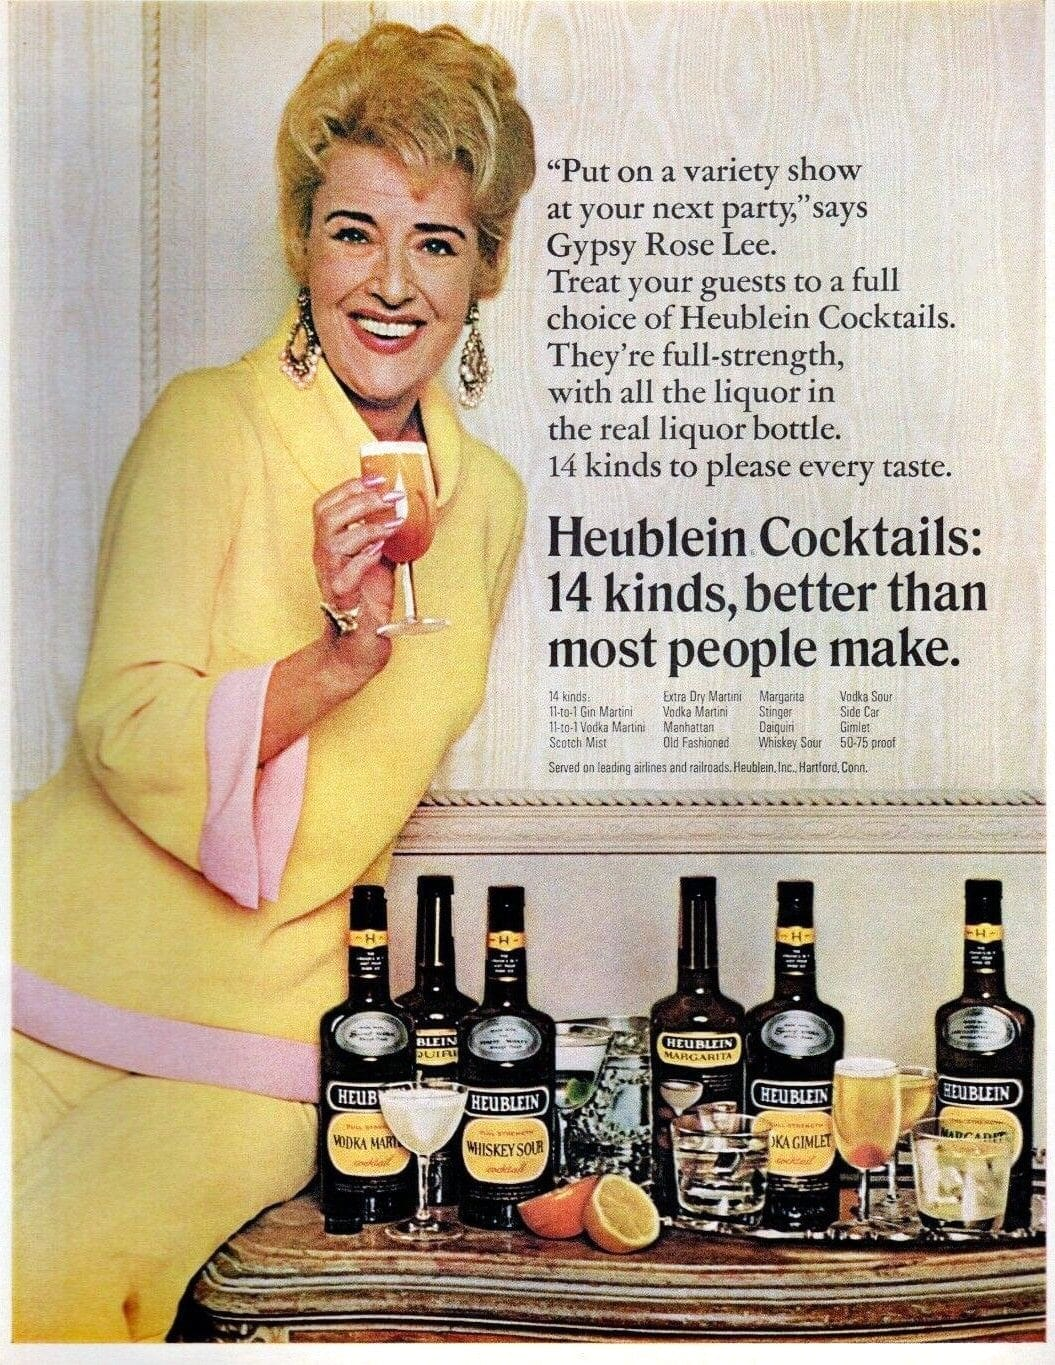 Vintage Gypsy Rose Lee ad for easy cocktail mixes from Heublein